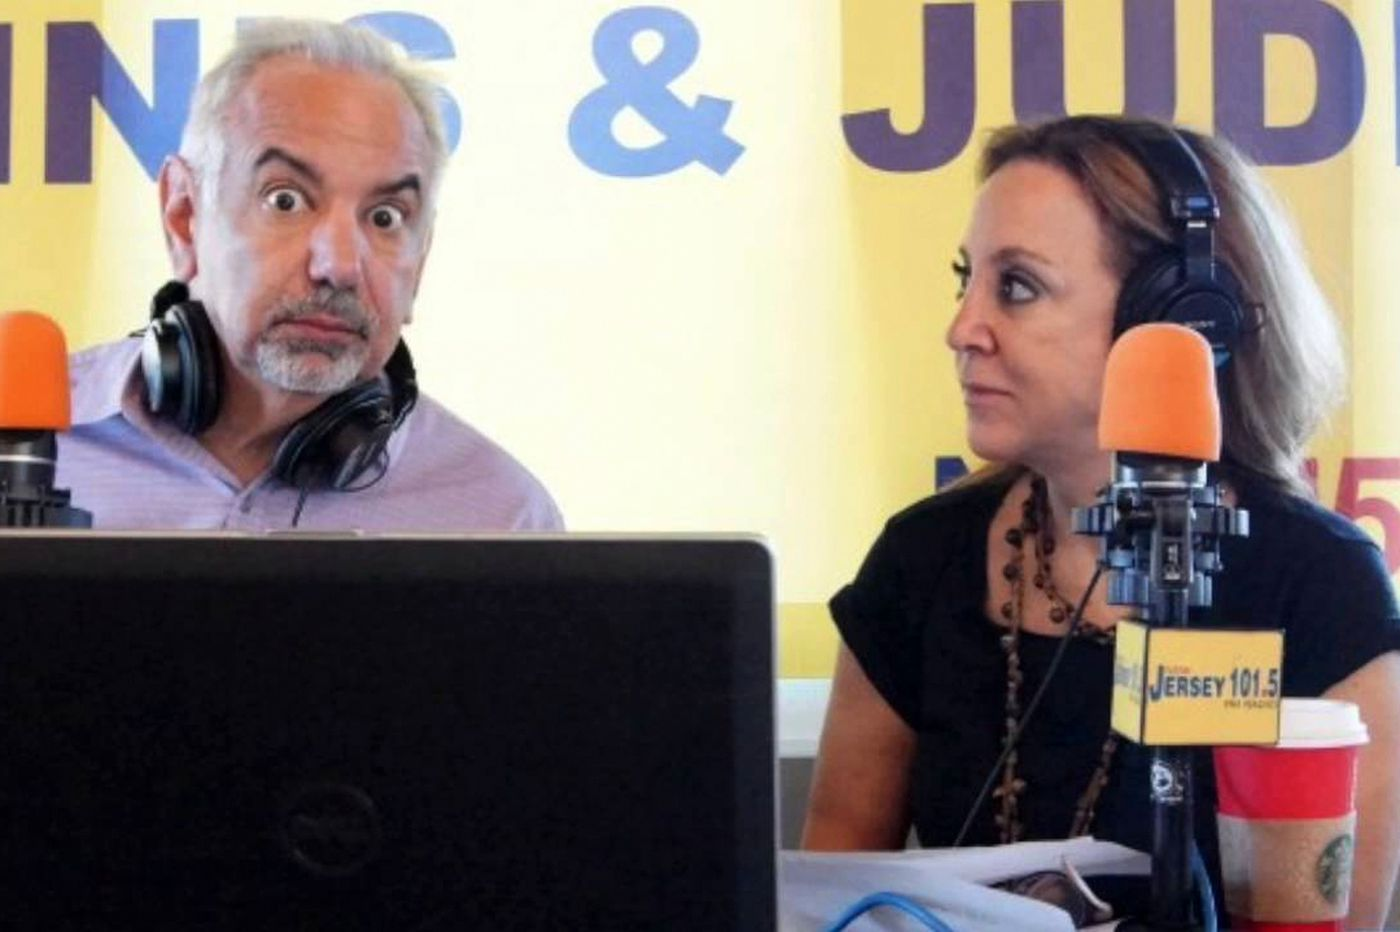 NJ 101.5's 'Dennis & Judi' return after making racist comments about New Jersey attorney general